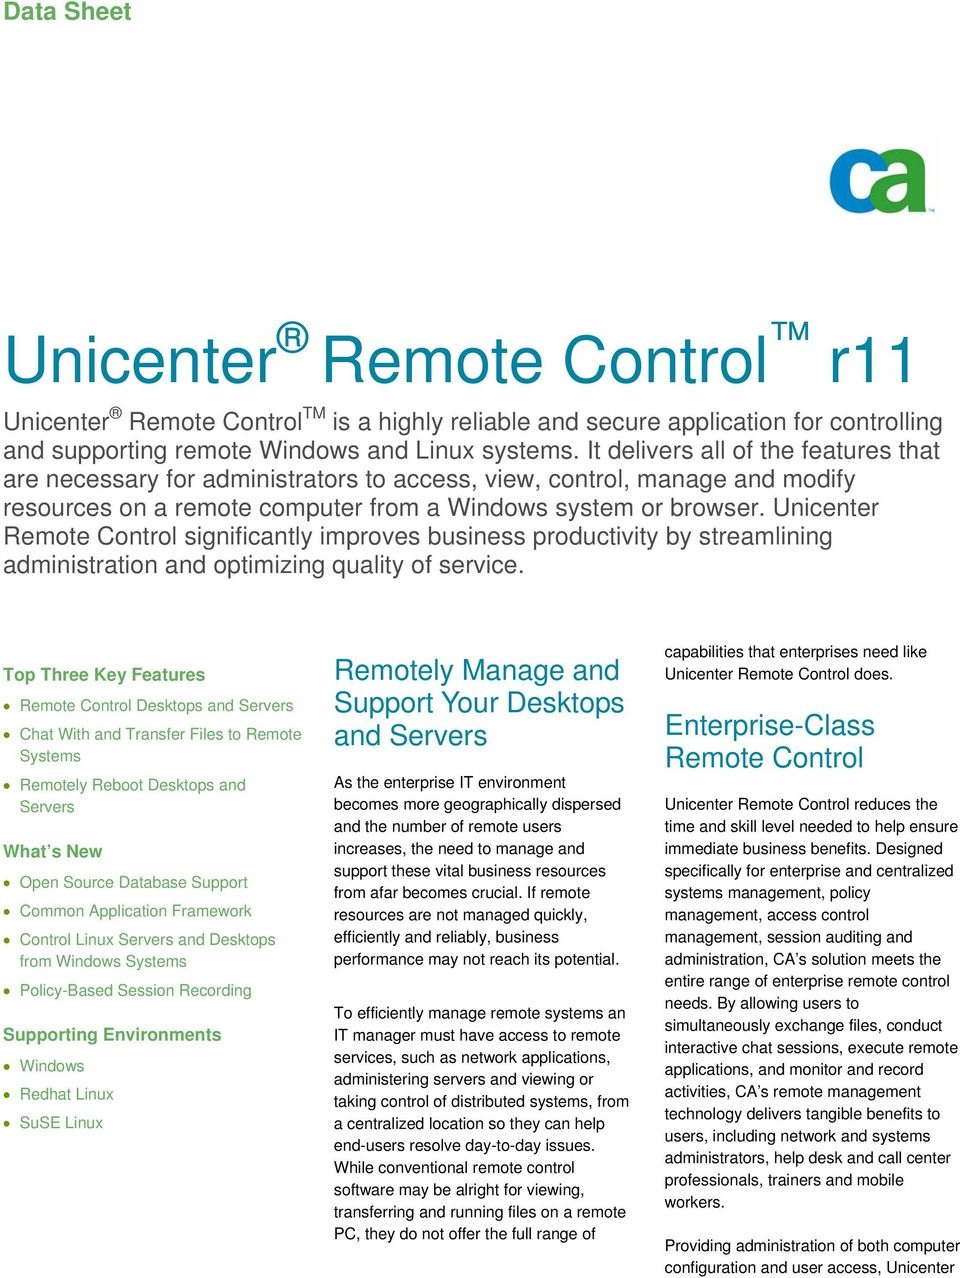 Unicenter Remote Control significantly improves business productivity by streamlining administration and optimizing quality of service.